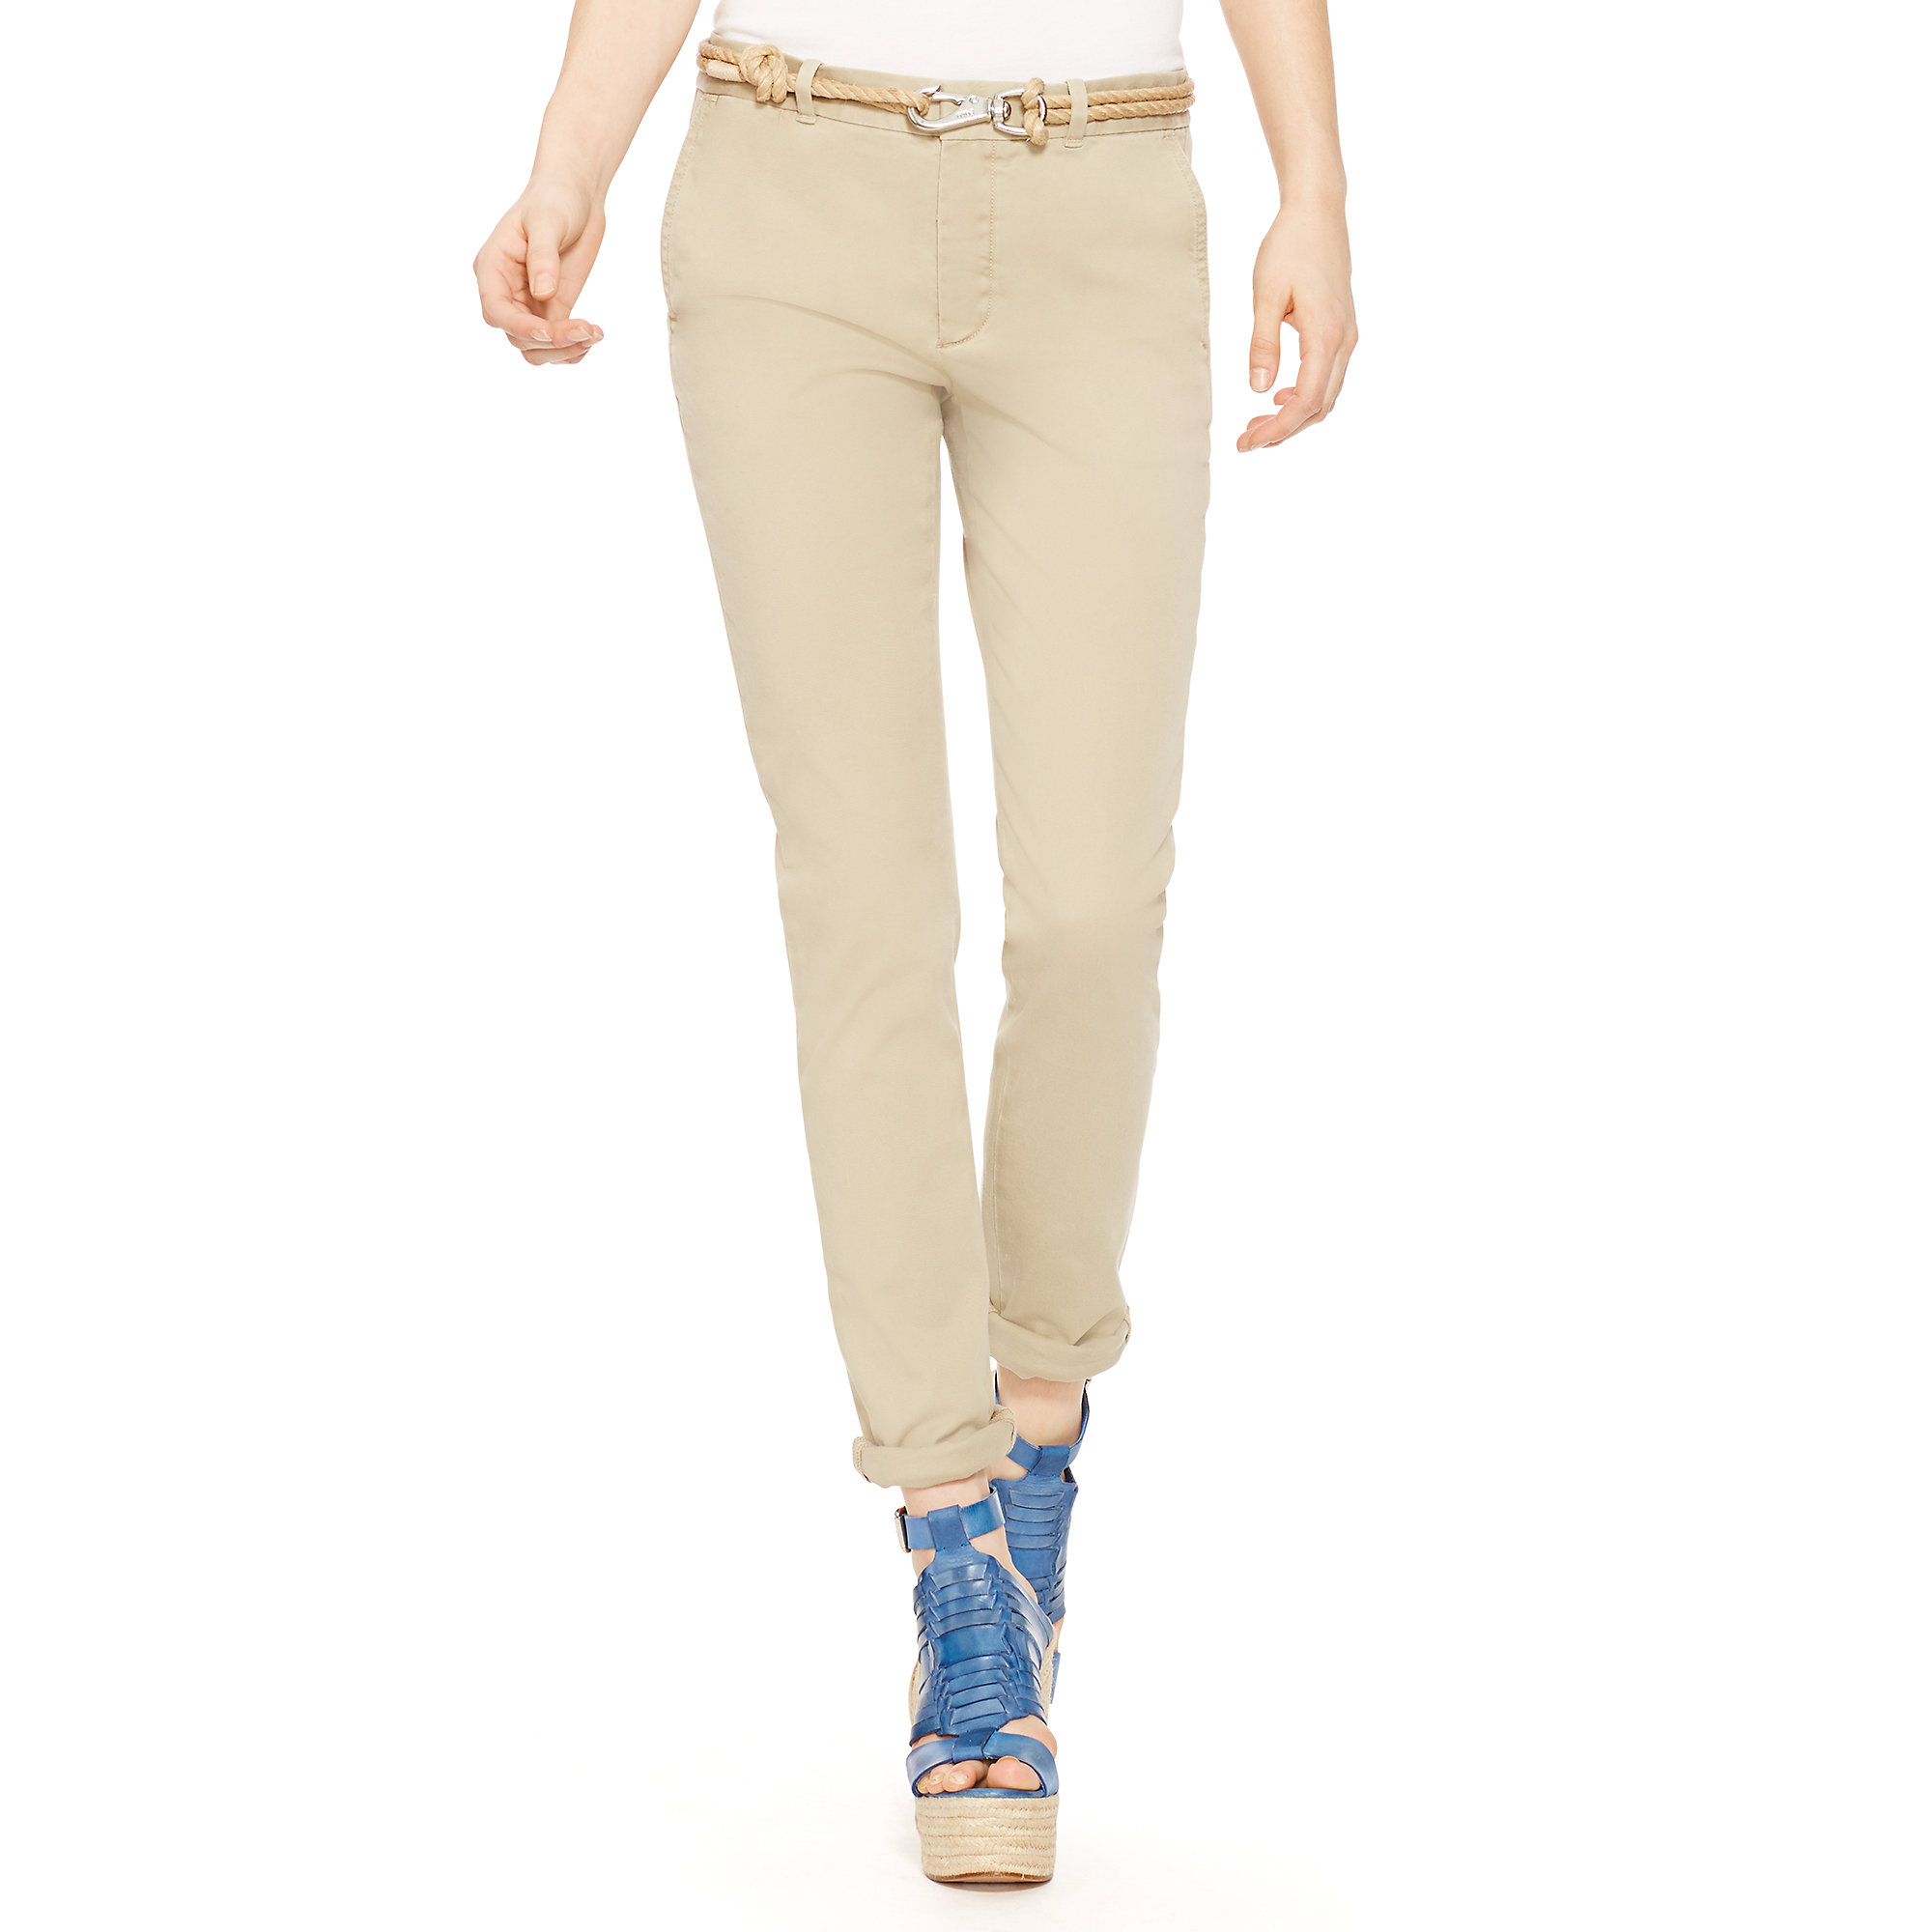 Polo Ralph Lauren Women's Brooke - Khaki - Chinos